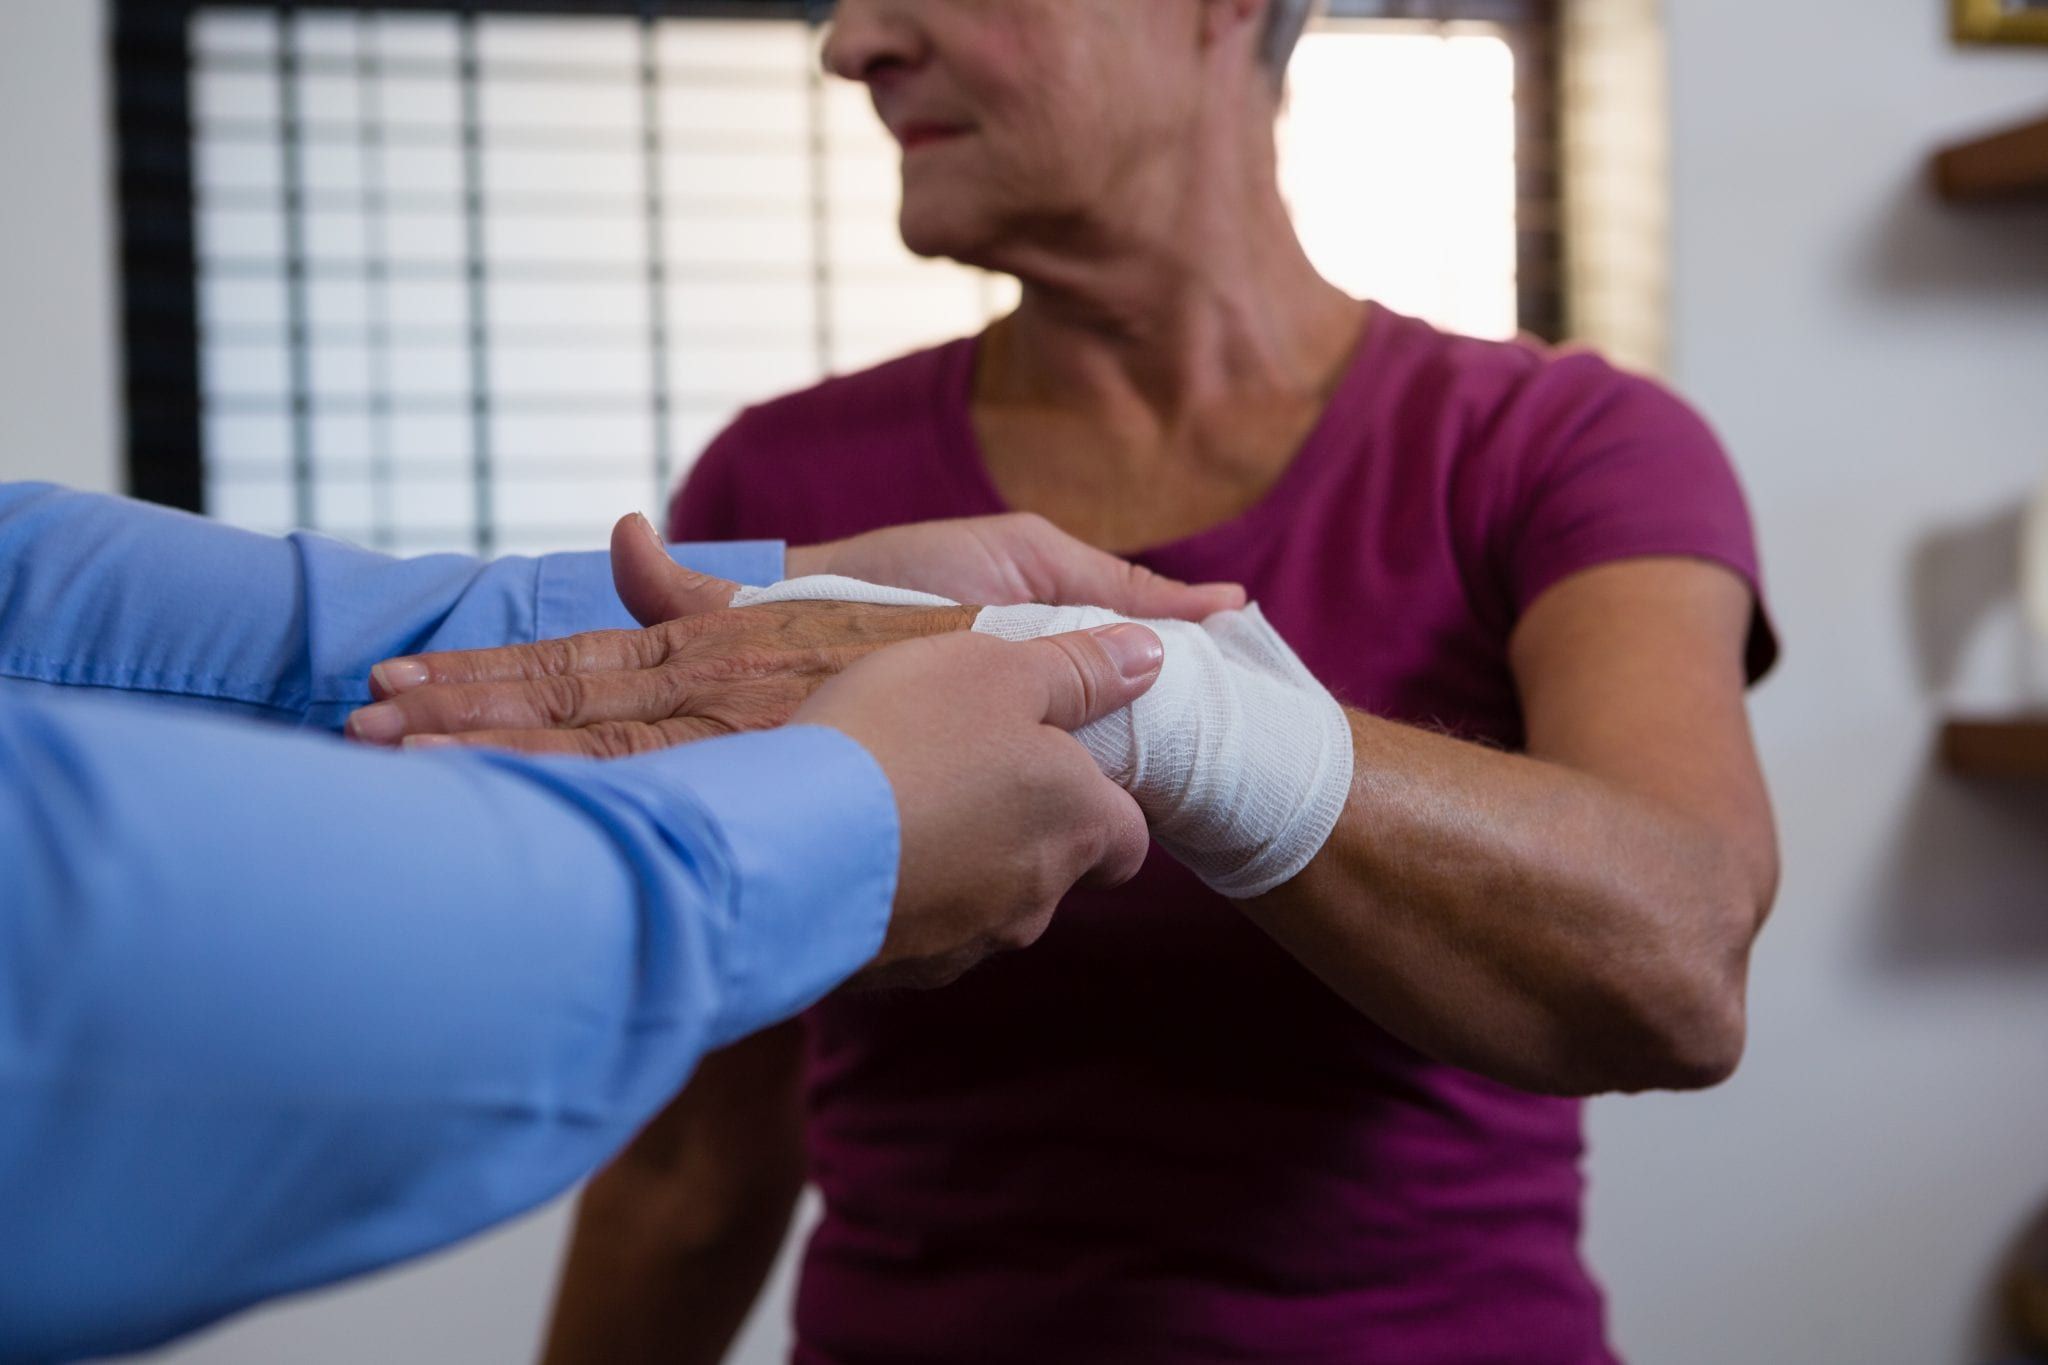 acupuncture for injuries injury pain management long island new york acupuncture smithtown